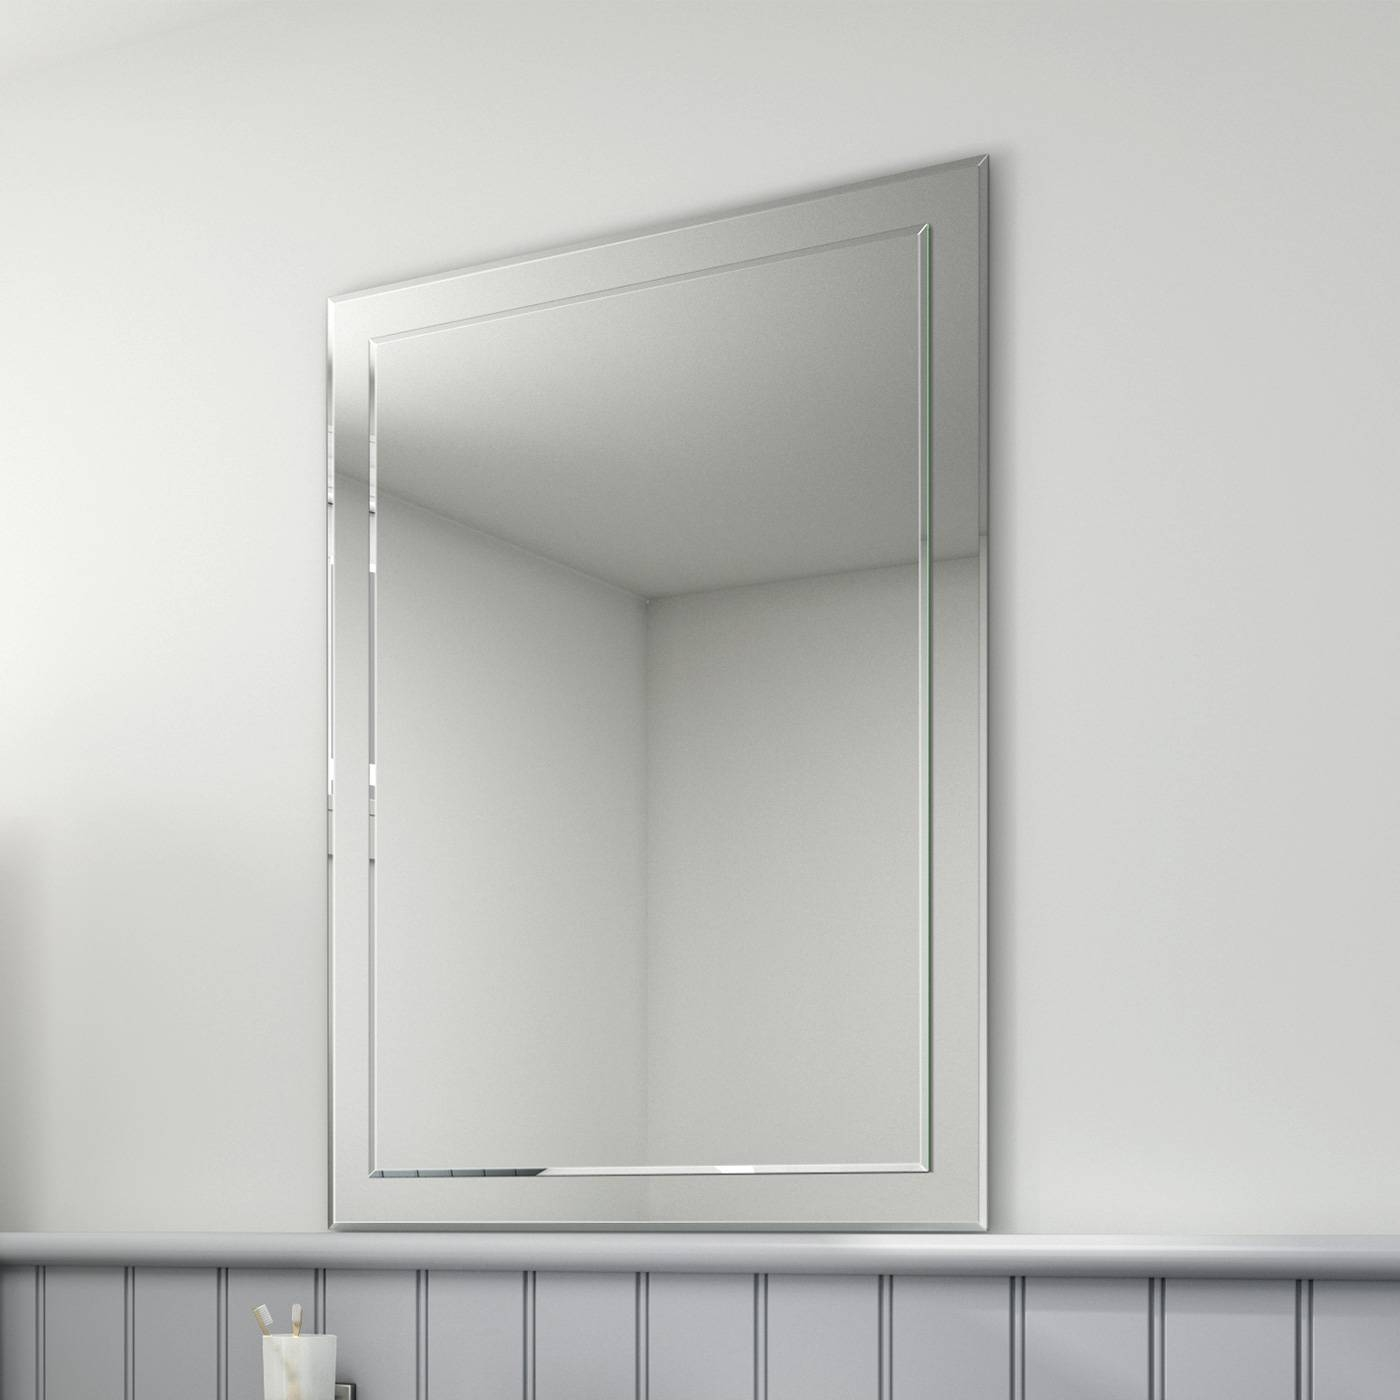 500X700Mm Rectangular Glass Bevelled Edge Bathroom Mirror Mc148 | Ebay Throughout Bevelled Edge Mirrors (View 1 of 15)